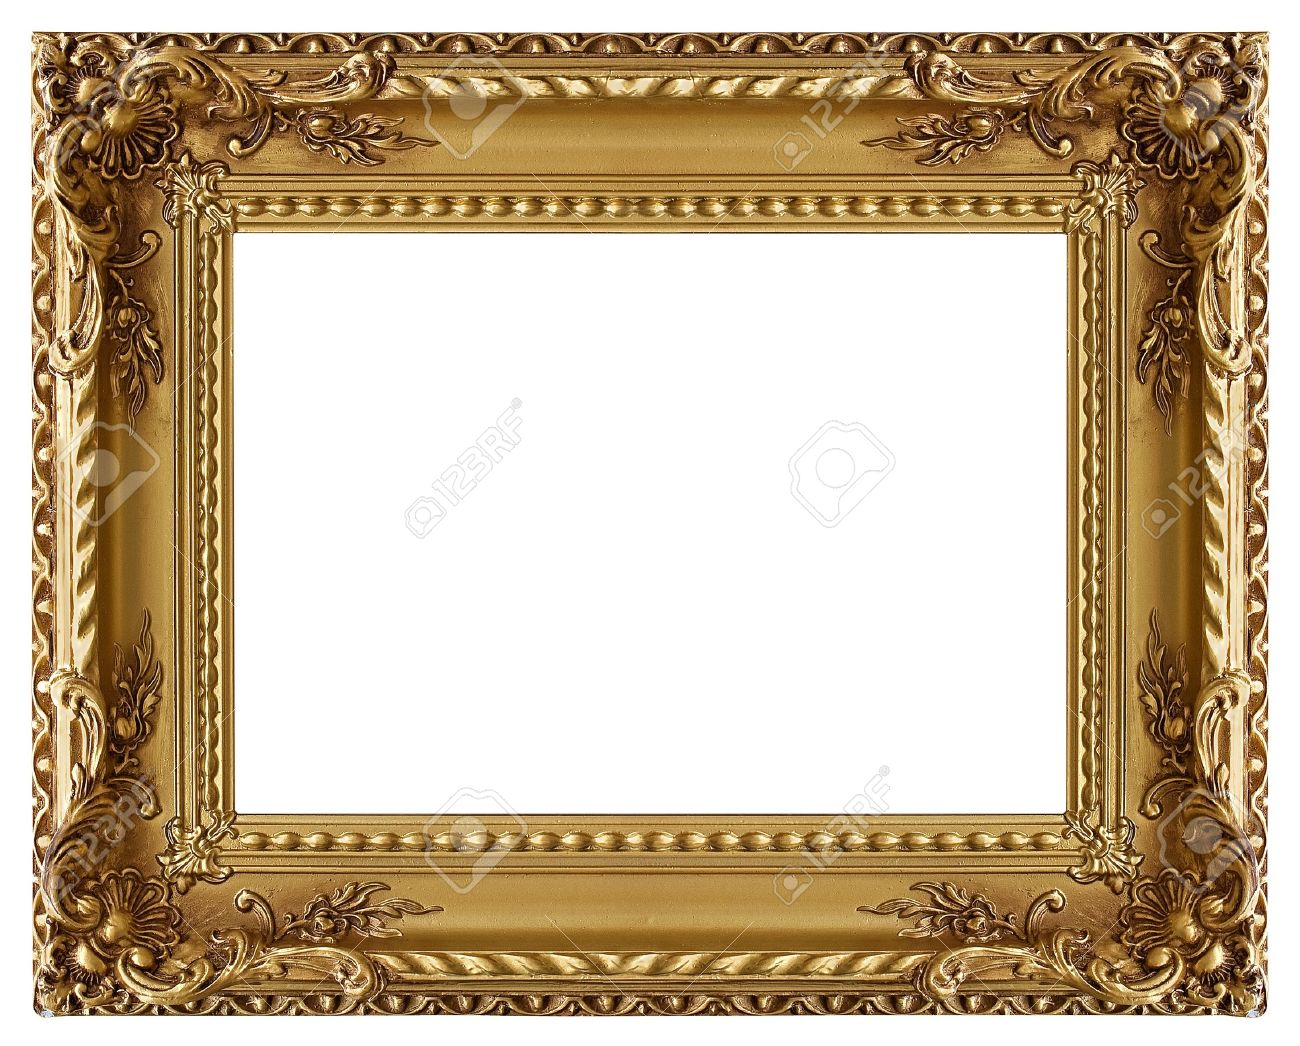 picture gold frame with a decorative pattern stock photo 8727820 - Decorative Picture Frames